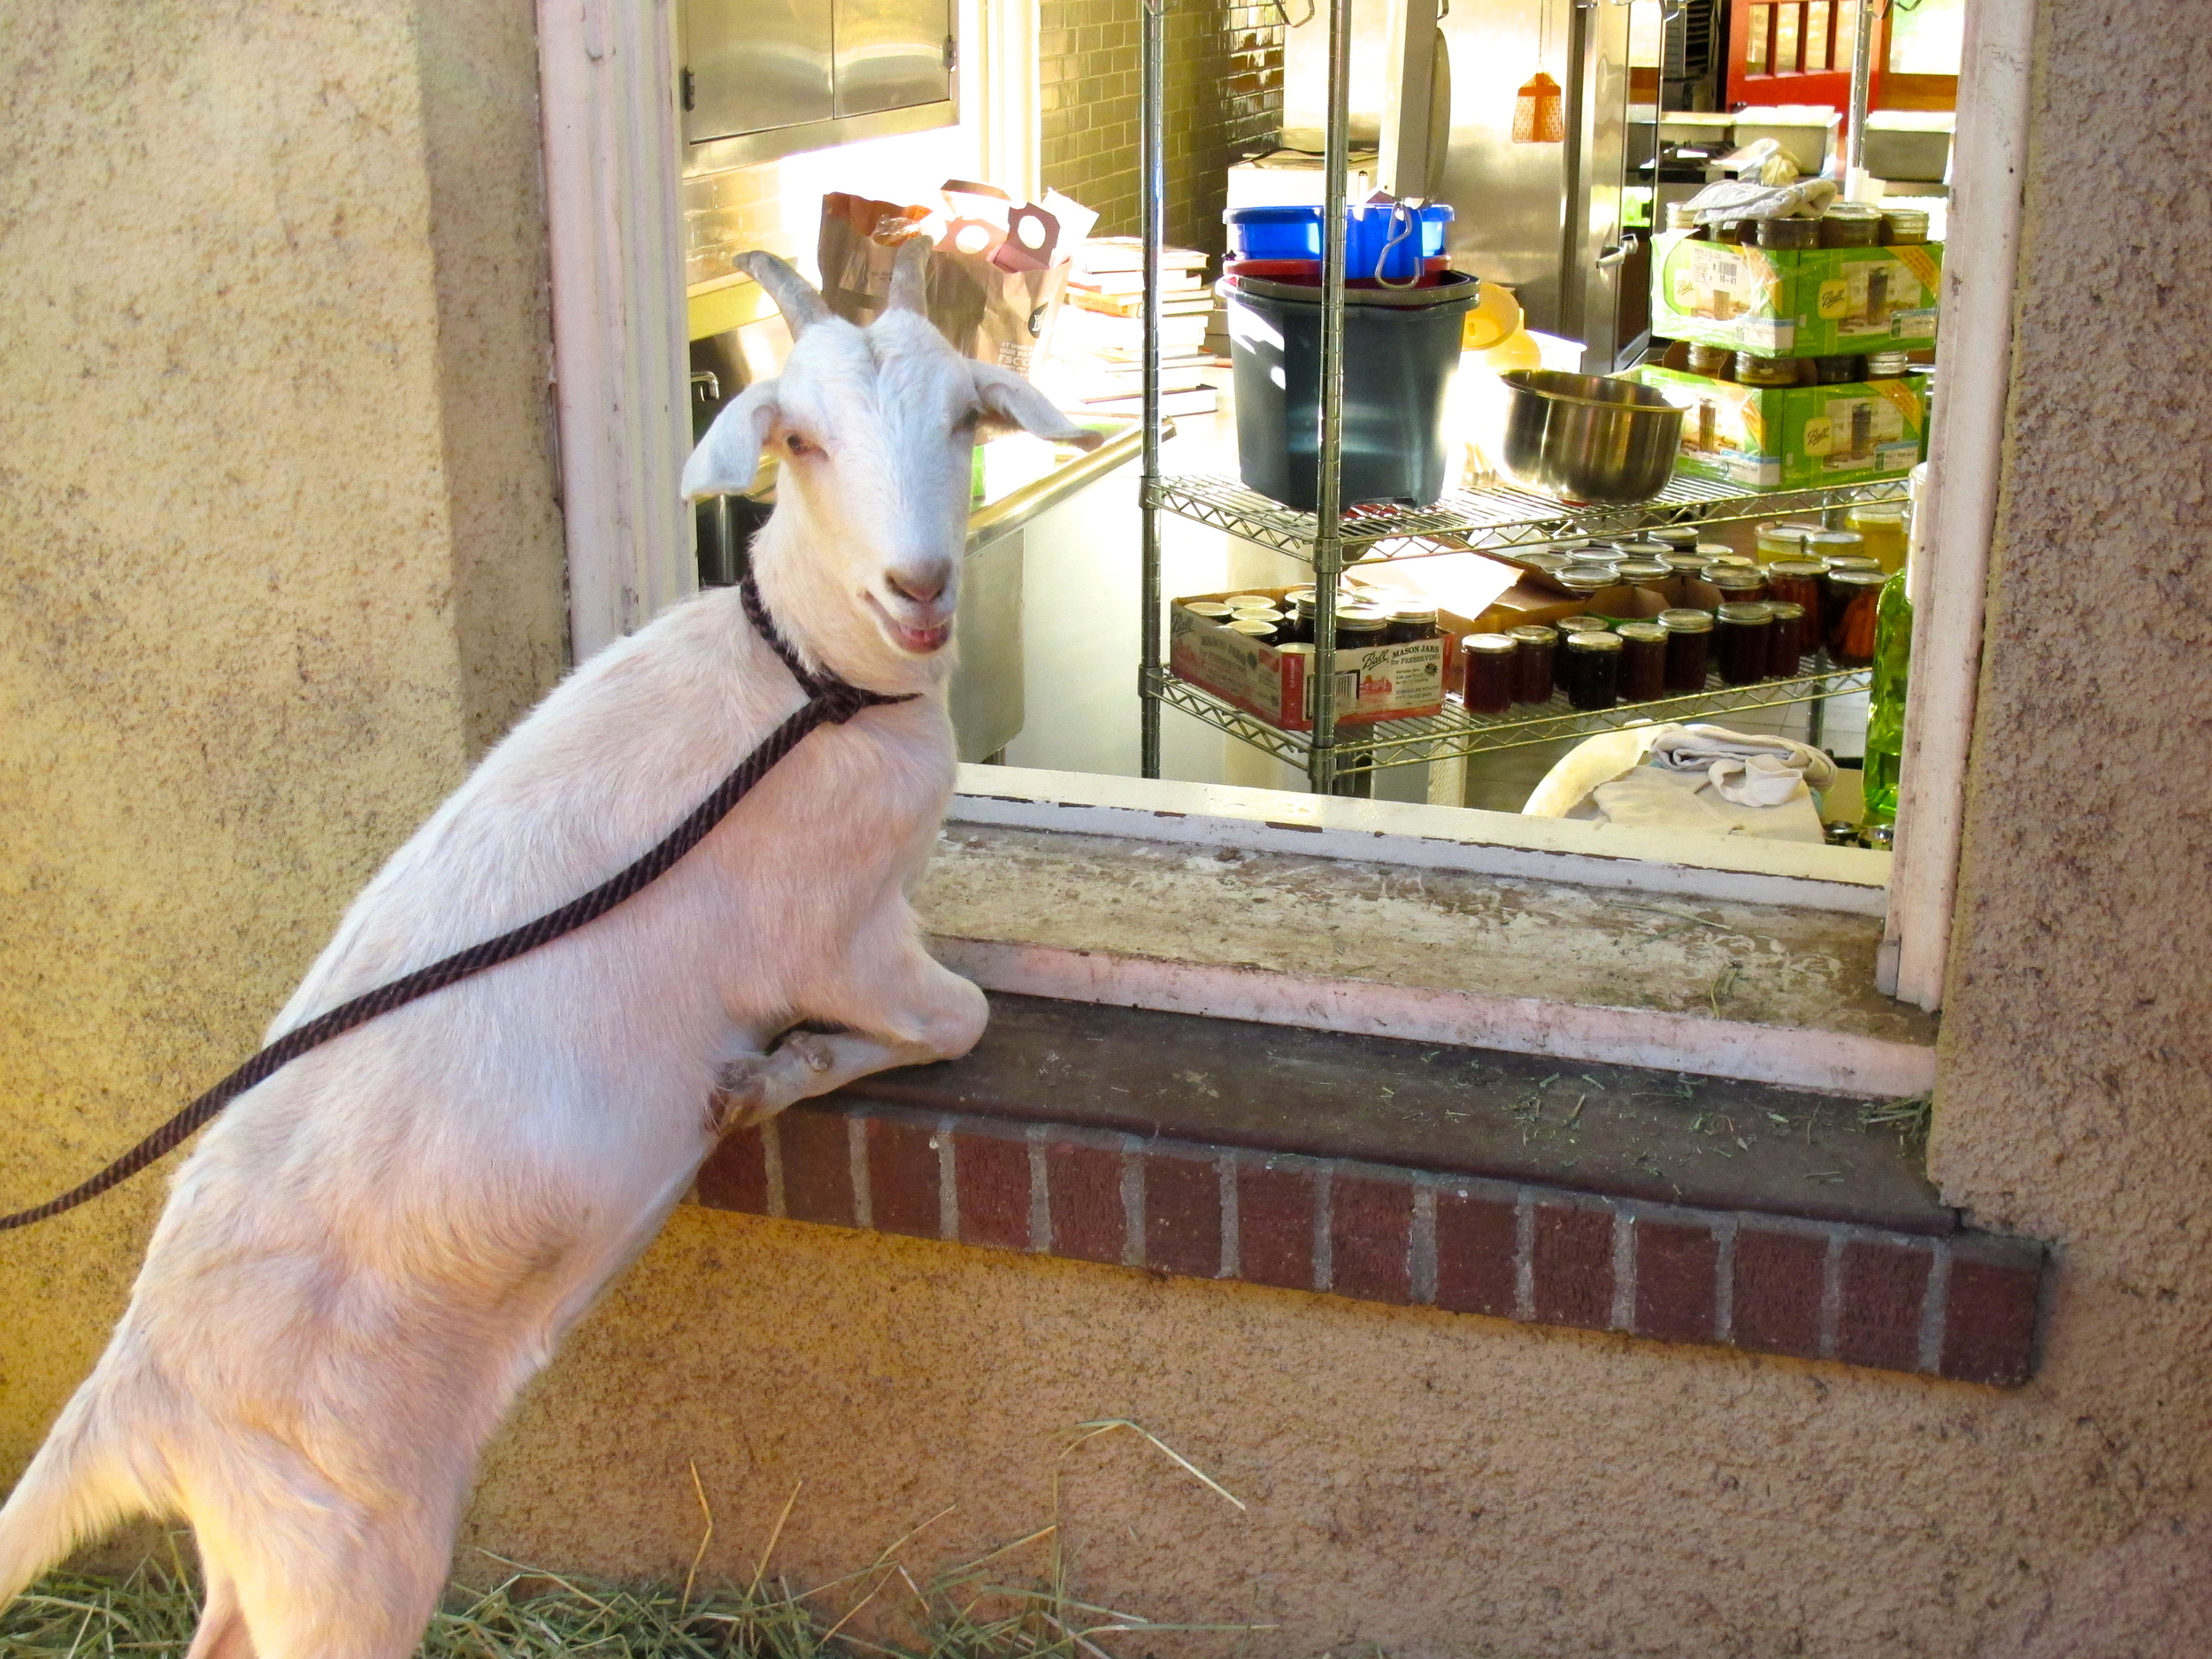 This goat is almost literally bringing fresh milk right into the kitchen